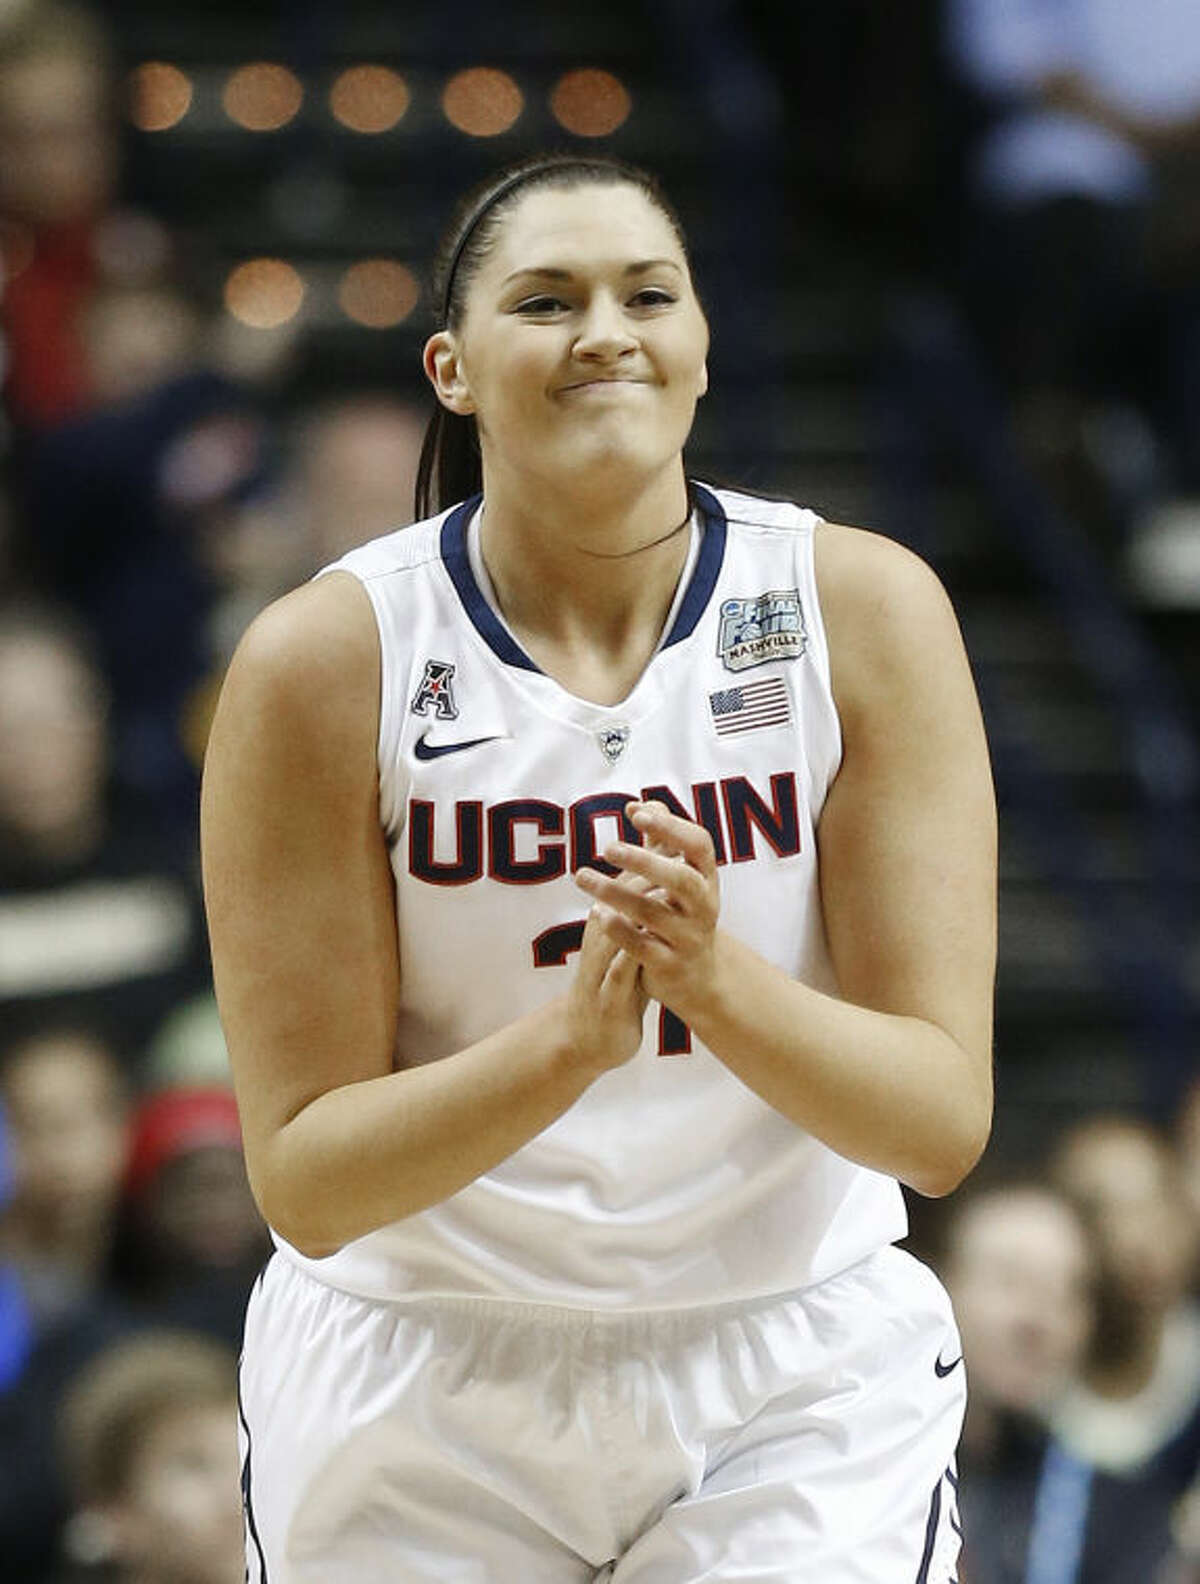 Connecticut center Stefanie Dolson (31) celebrates a basket against Stanford during the first half of the semifinal game in the Final Four of the NCAA women's college basketball tournament, Sunday, April 6, 2014, in Nashville, Tenn. (AP Photo/John Bazemore)